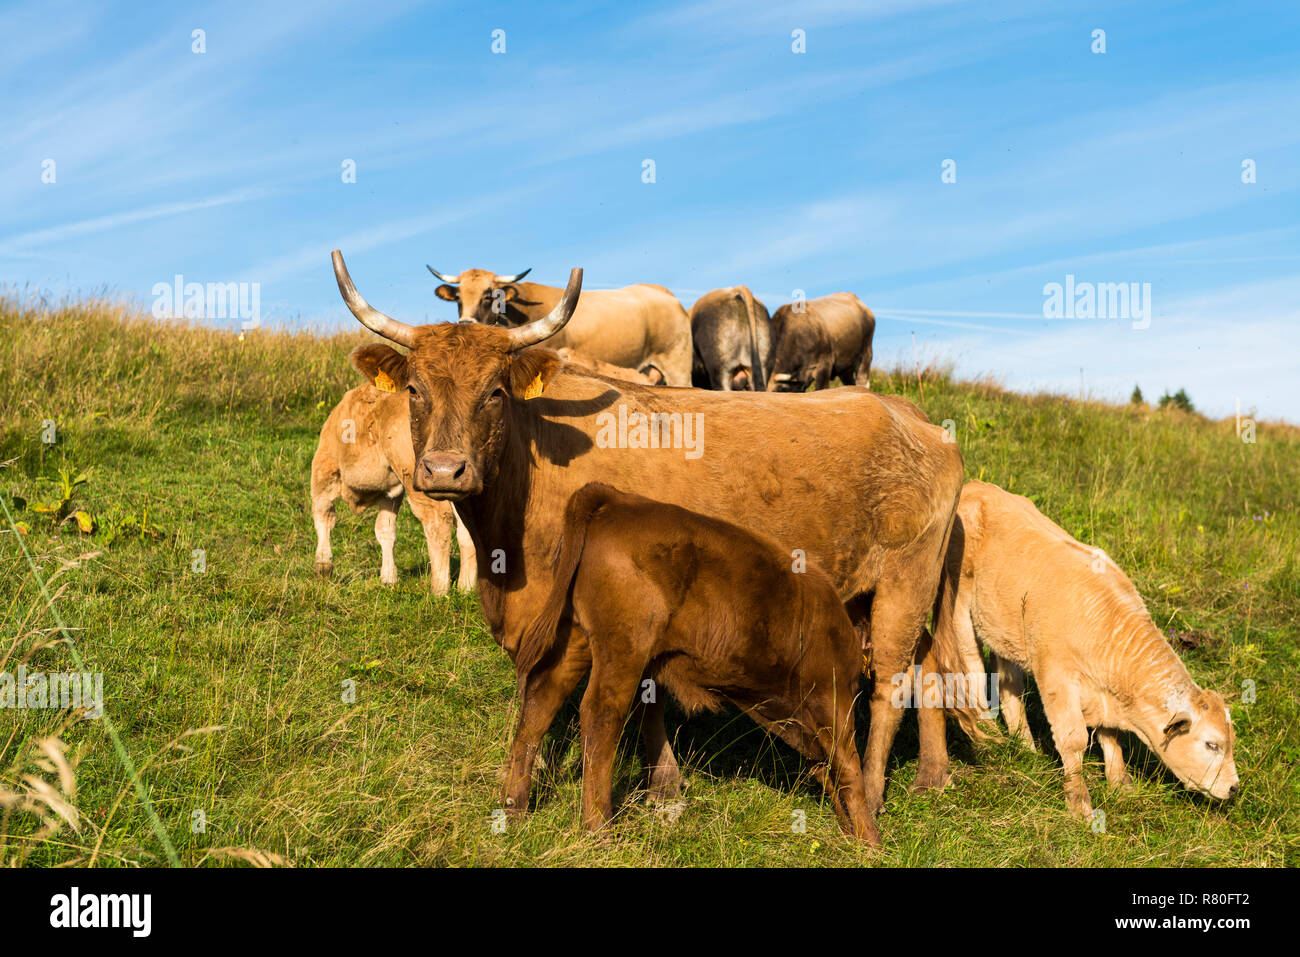 Herd of Tarentaise cows in a field on the site of Le-Sire, near the ski resort of La Feclaz, in the heart of the Bauges Massif Regional Nature Park. C - Stock Image